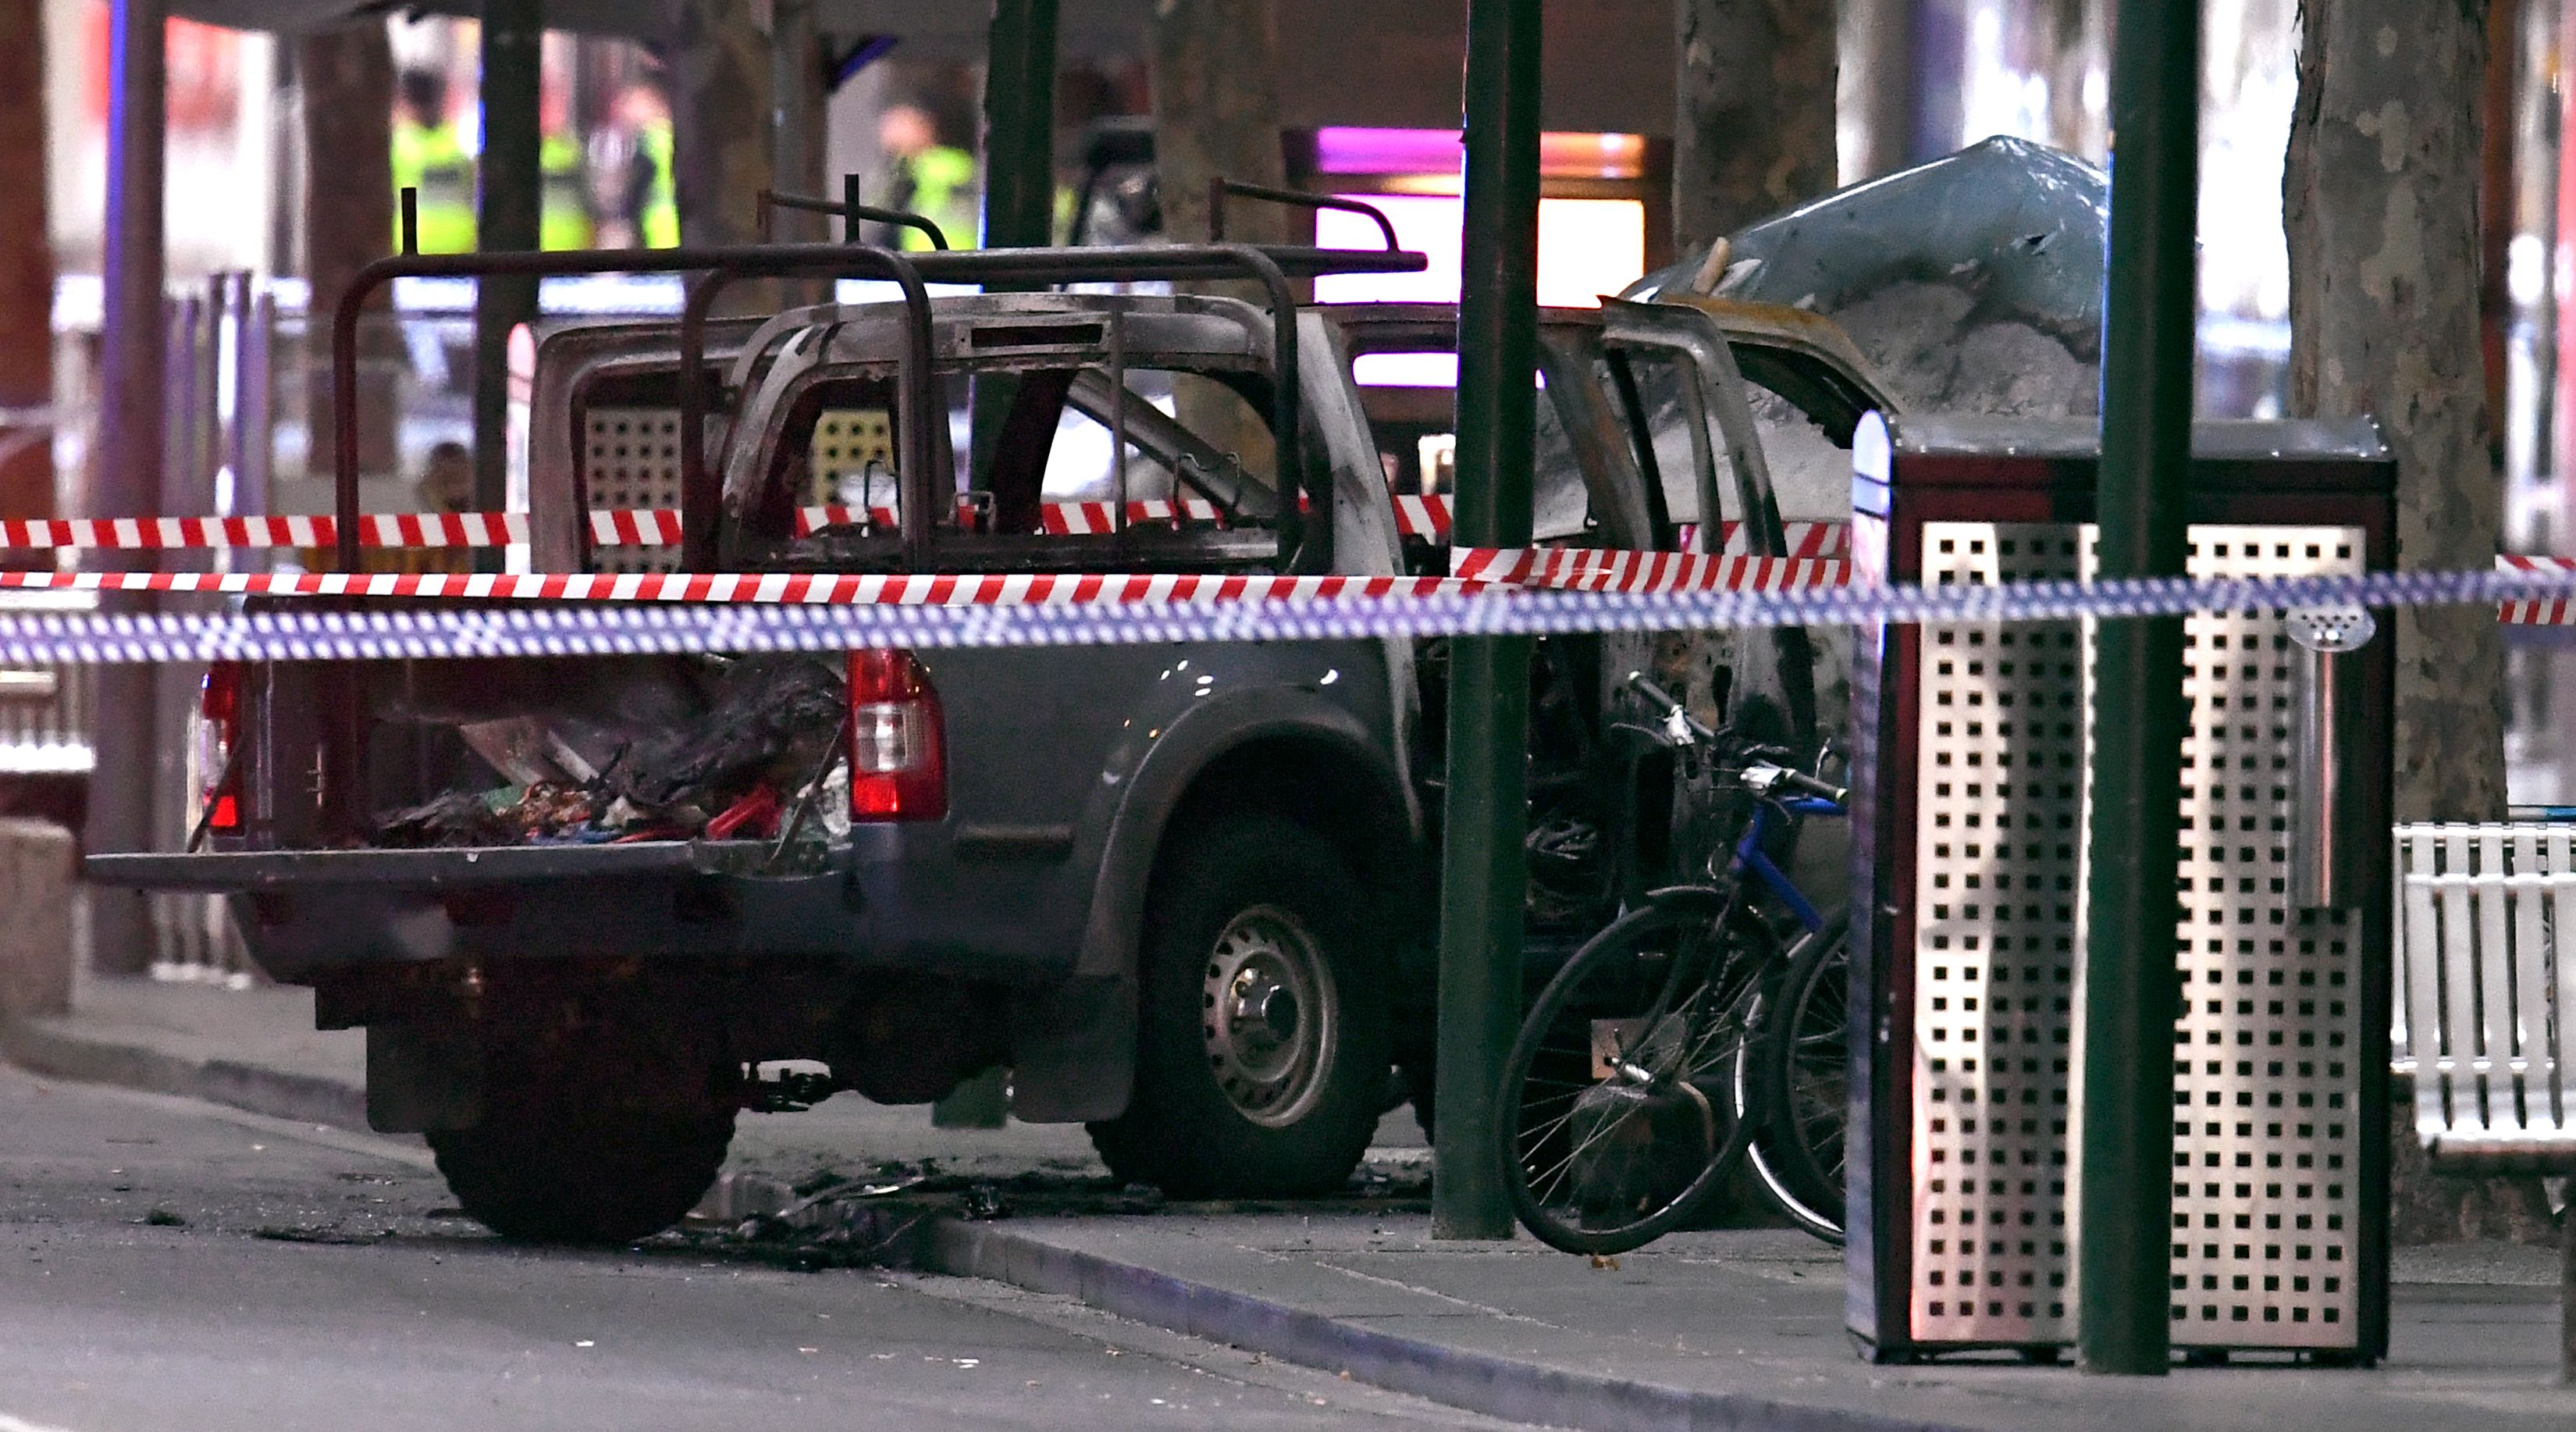 A burnt out vehicle is pictured at the crime scene following a stabbing incident in Melbourne on November 9, 2018. - One person was killed and two others injured in a rush hour stabbing incident in Melbourne's bustling central business district on November 9, prompting police to shoot a knife-wielding suspect near a burning vehicle. (Photo by William WEST / AFP)